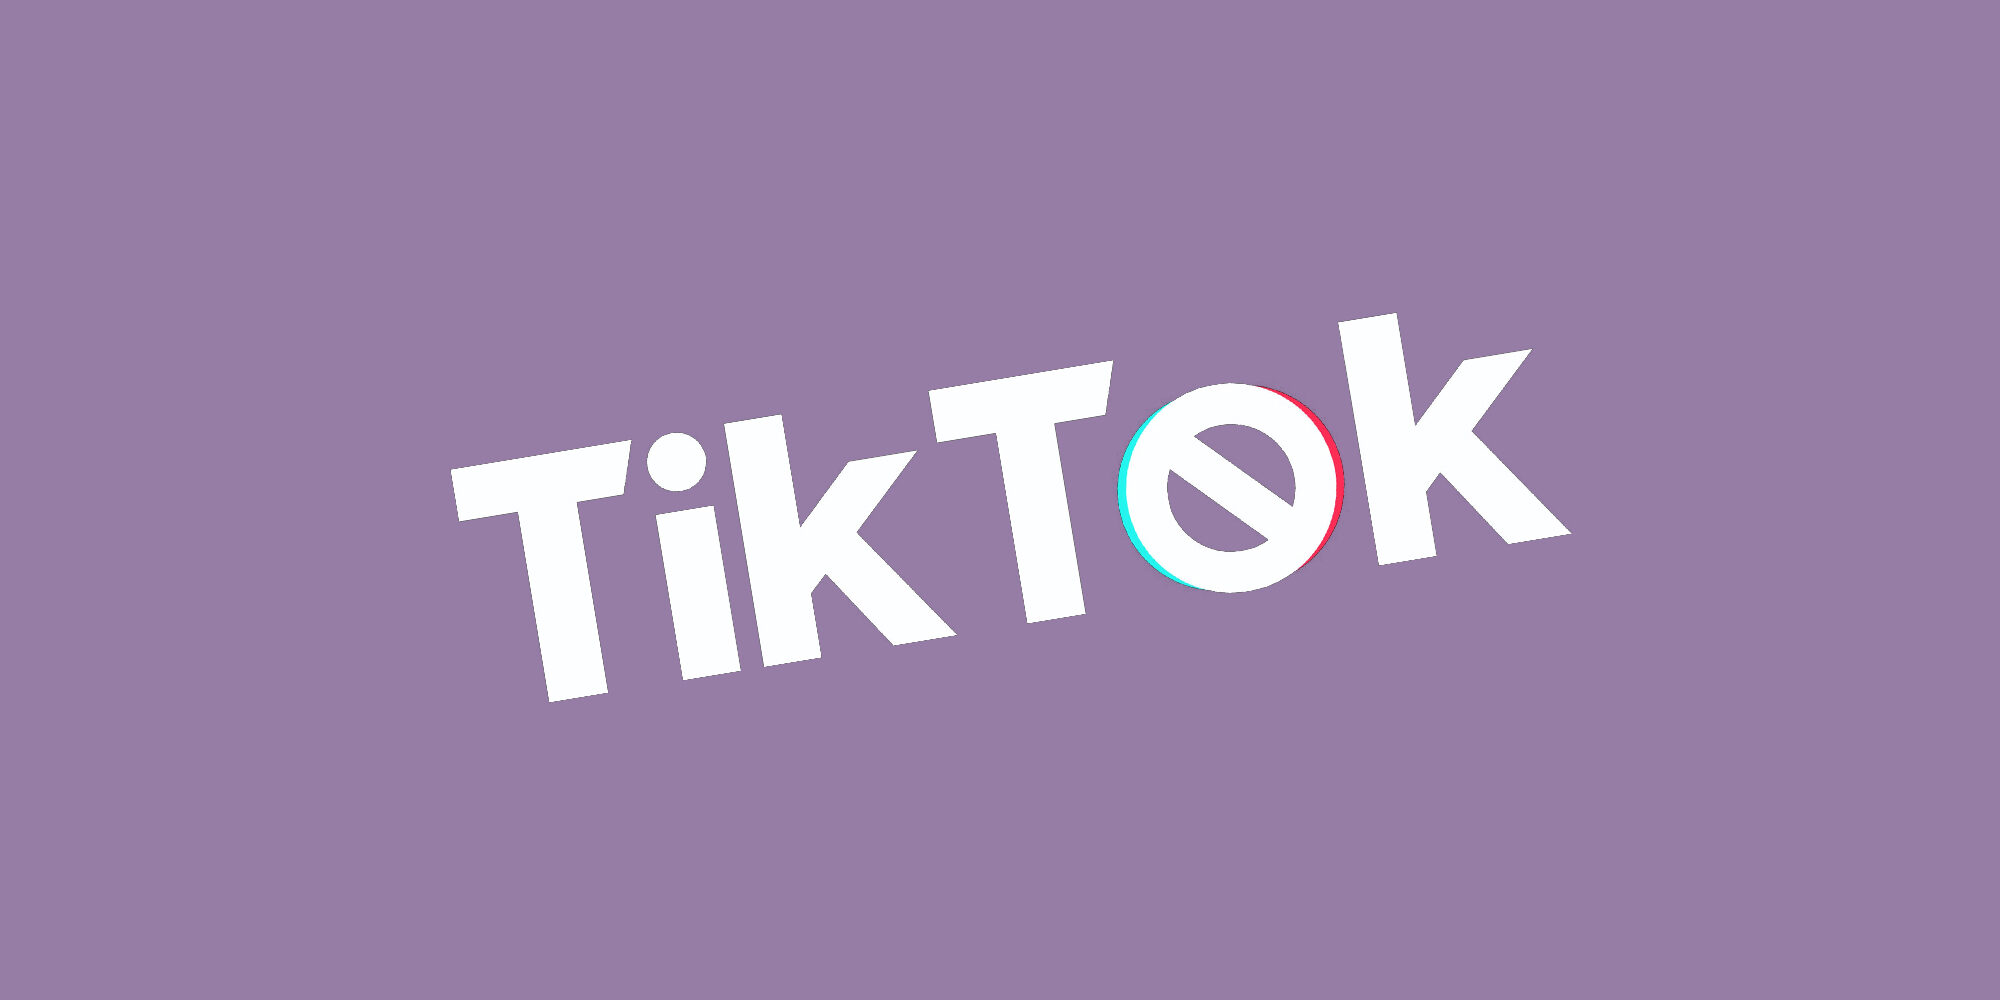 With The TikTok Ban Looming, Beauty Brands Look To Diversify Social Media Strategies